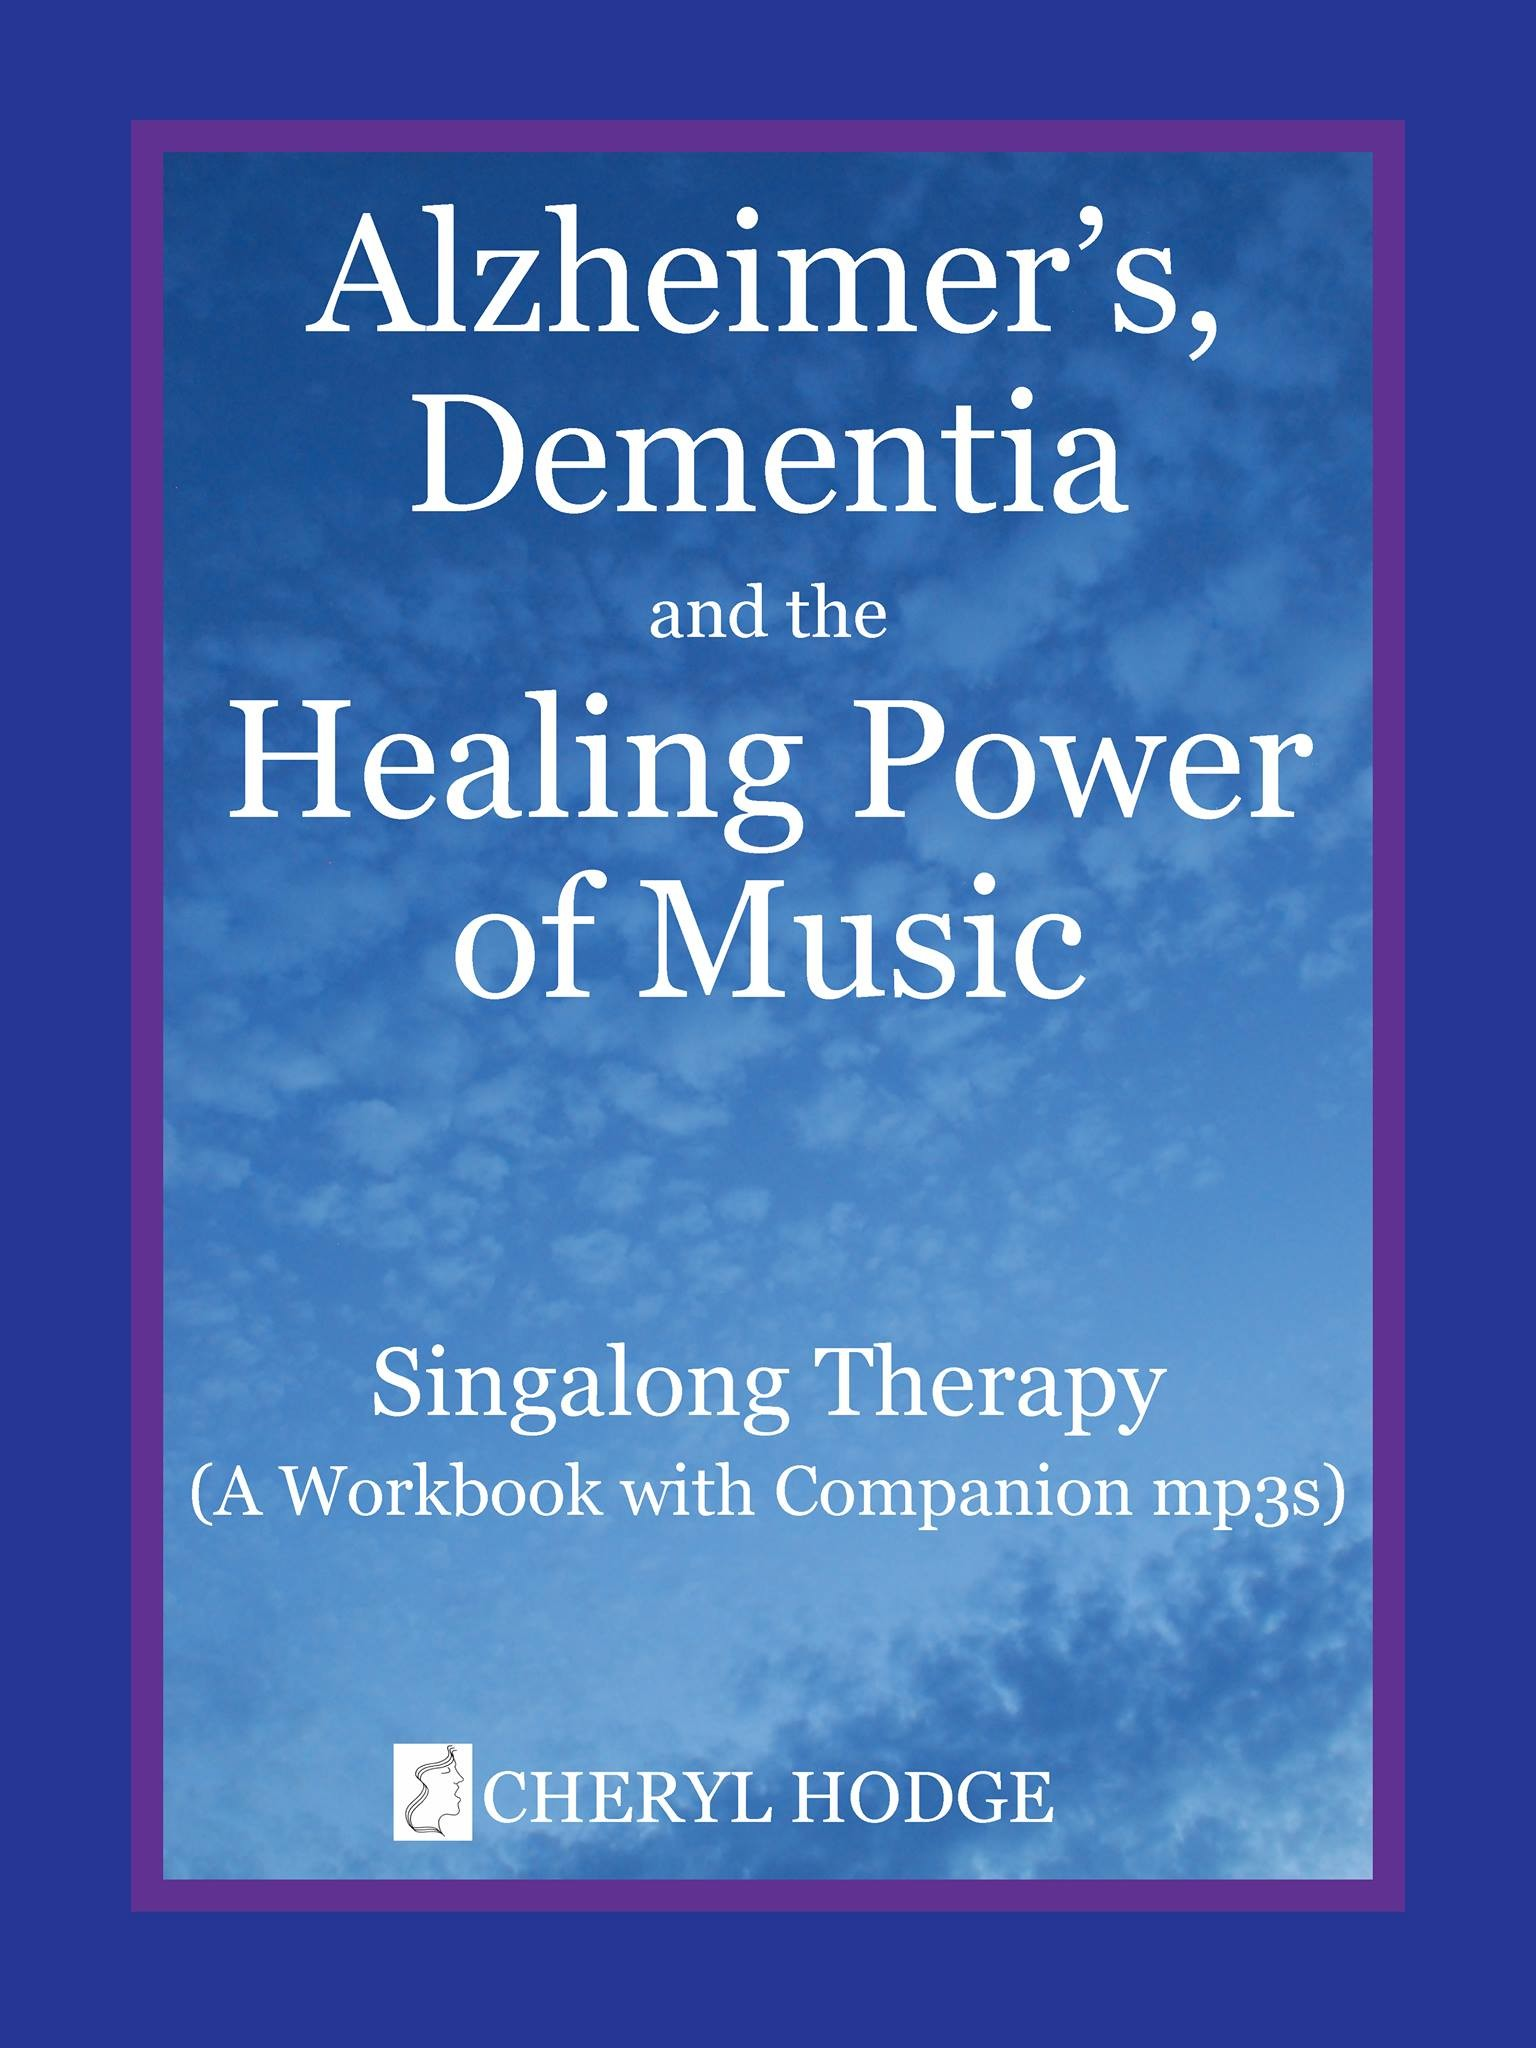 Alzheimers, Dementia and the Healing Power of Music